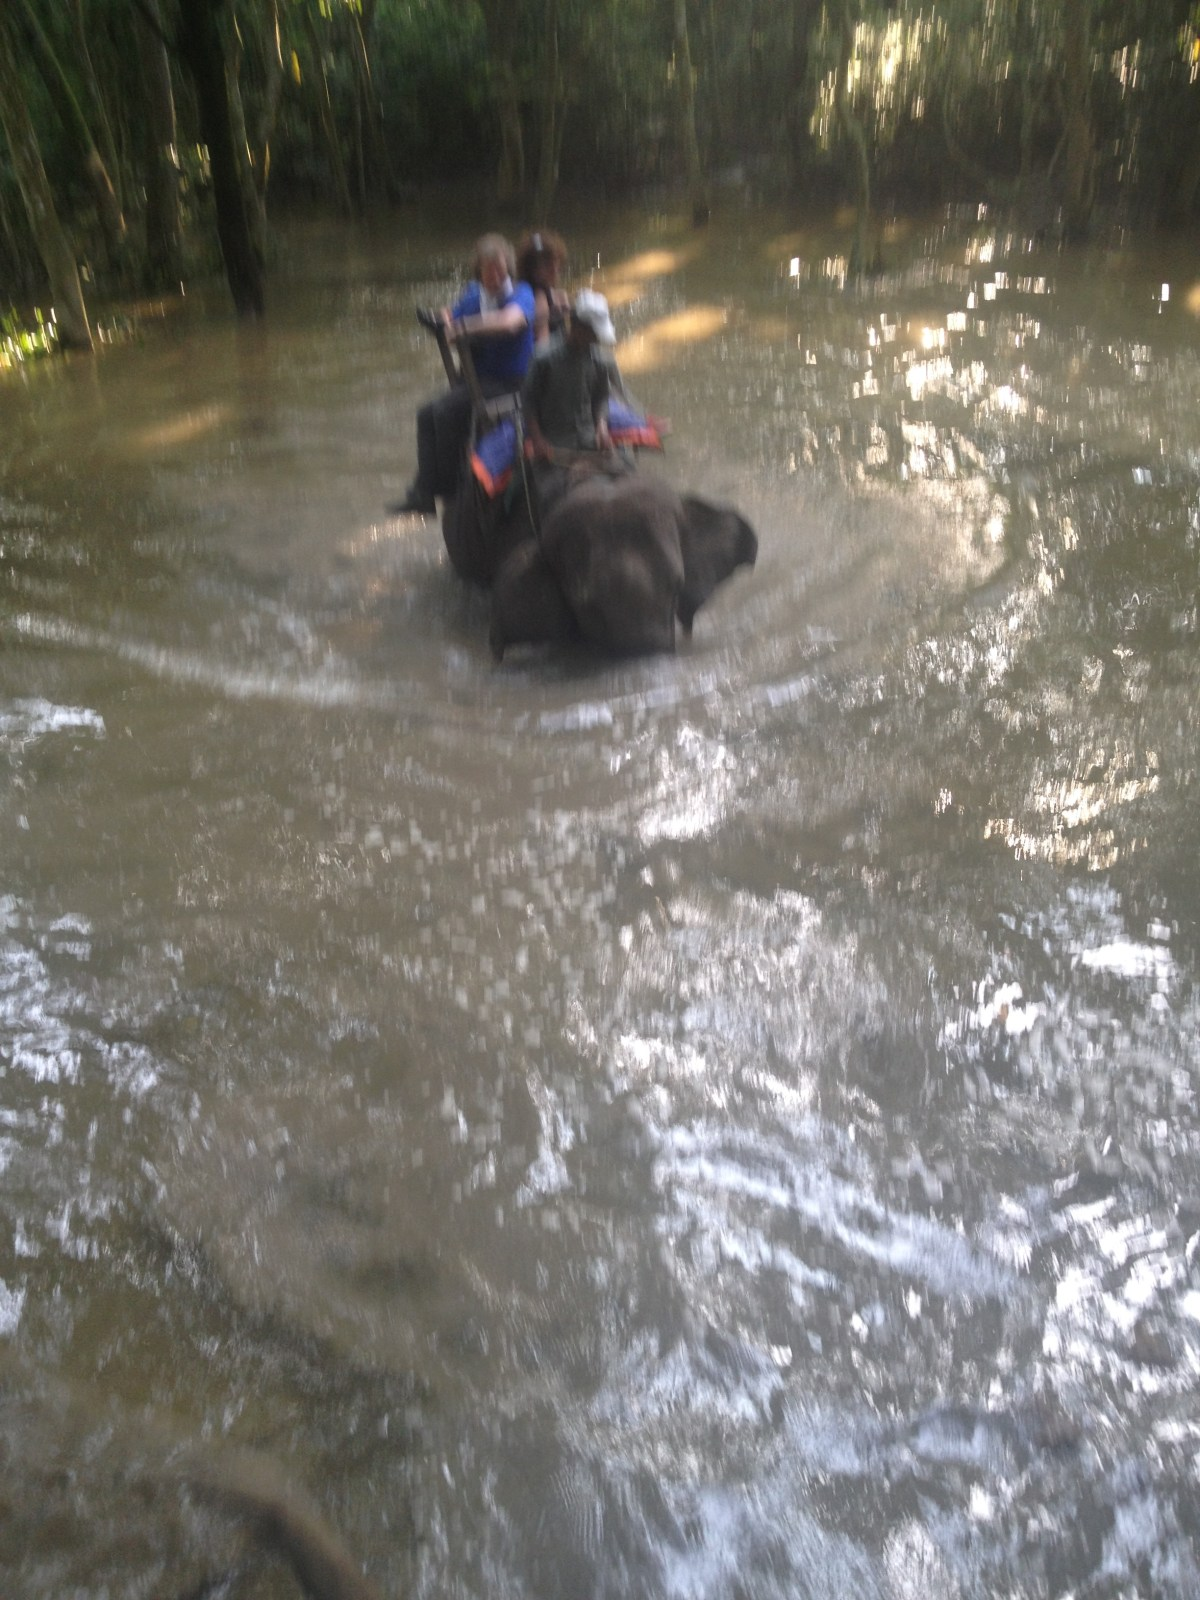 Chitwan National Park: Boarding and Riding an Elephant